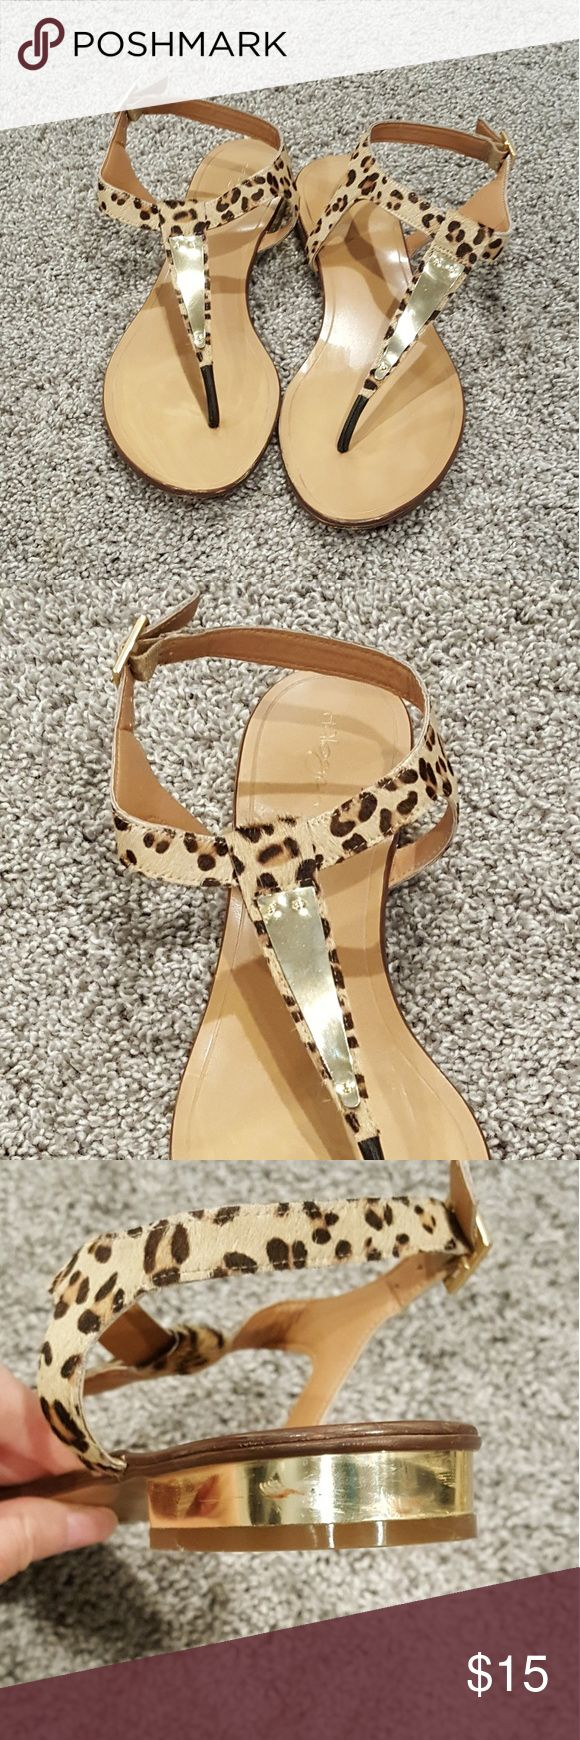 Halogen Leopard Print Sandals Chic sandals by Nordstrom exclusive brand Halogen. Calf-hair fur in a fun leopard print. T-strap and back sole feature gold tone metal details. Buckle ankle strap.   Worn only a few times (wear shown on ball part of the sole). Also has red marks on the right heel (see pic 3).  Priced accordingly. Halogen Shoes Sandals